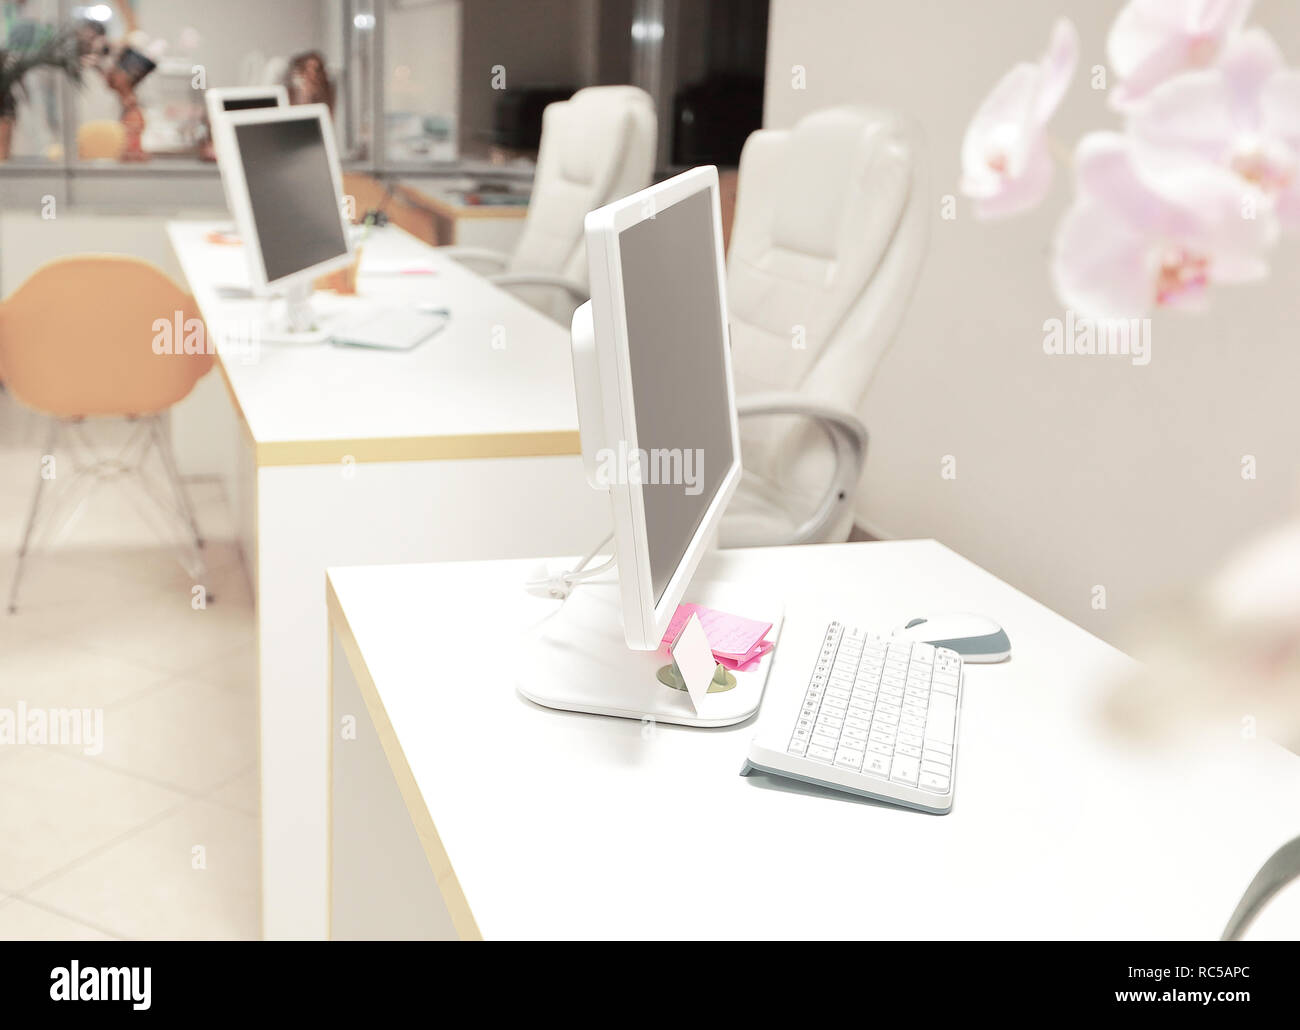 modern office travel Agency.photo with copy space - Stock Image